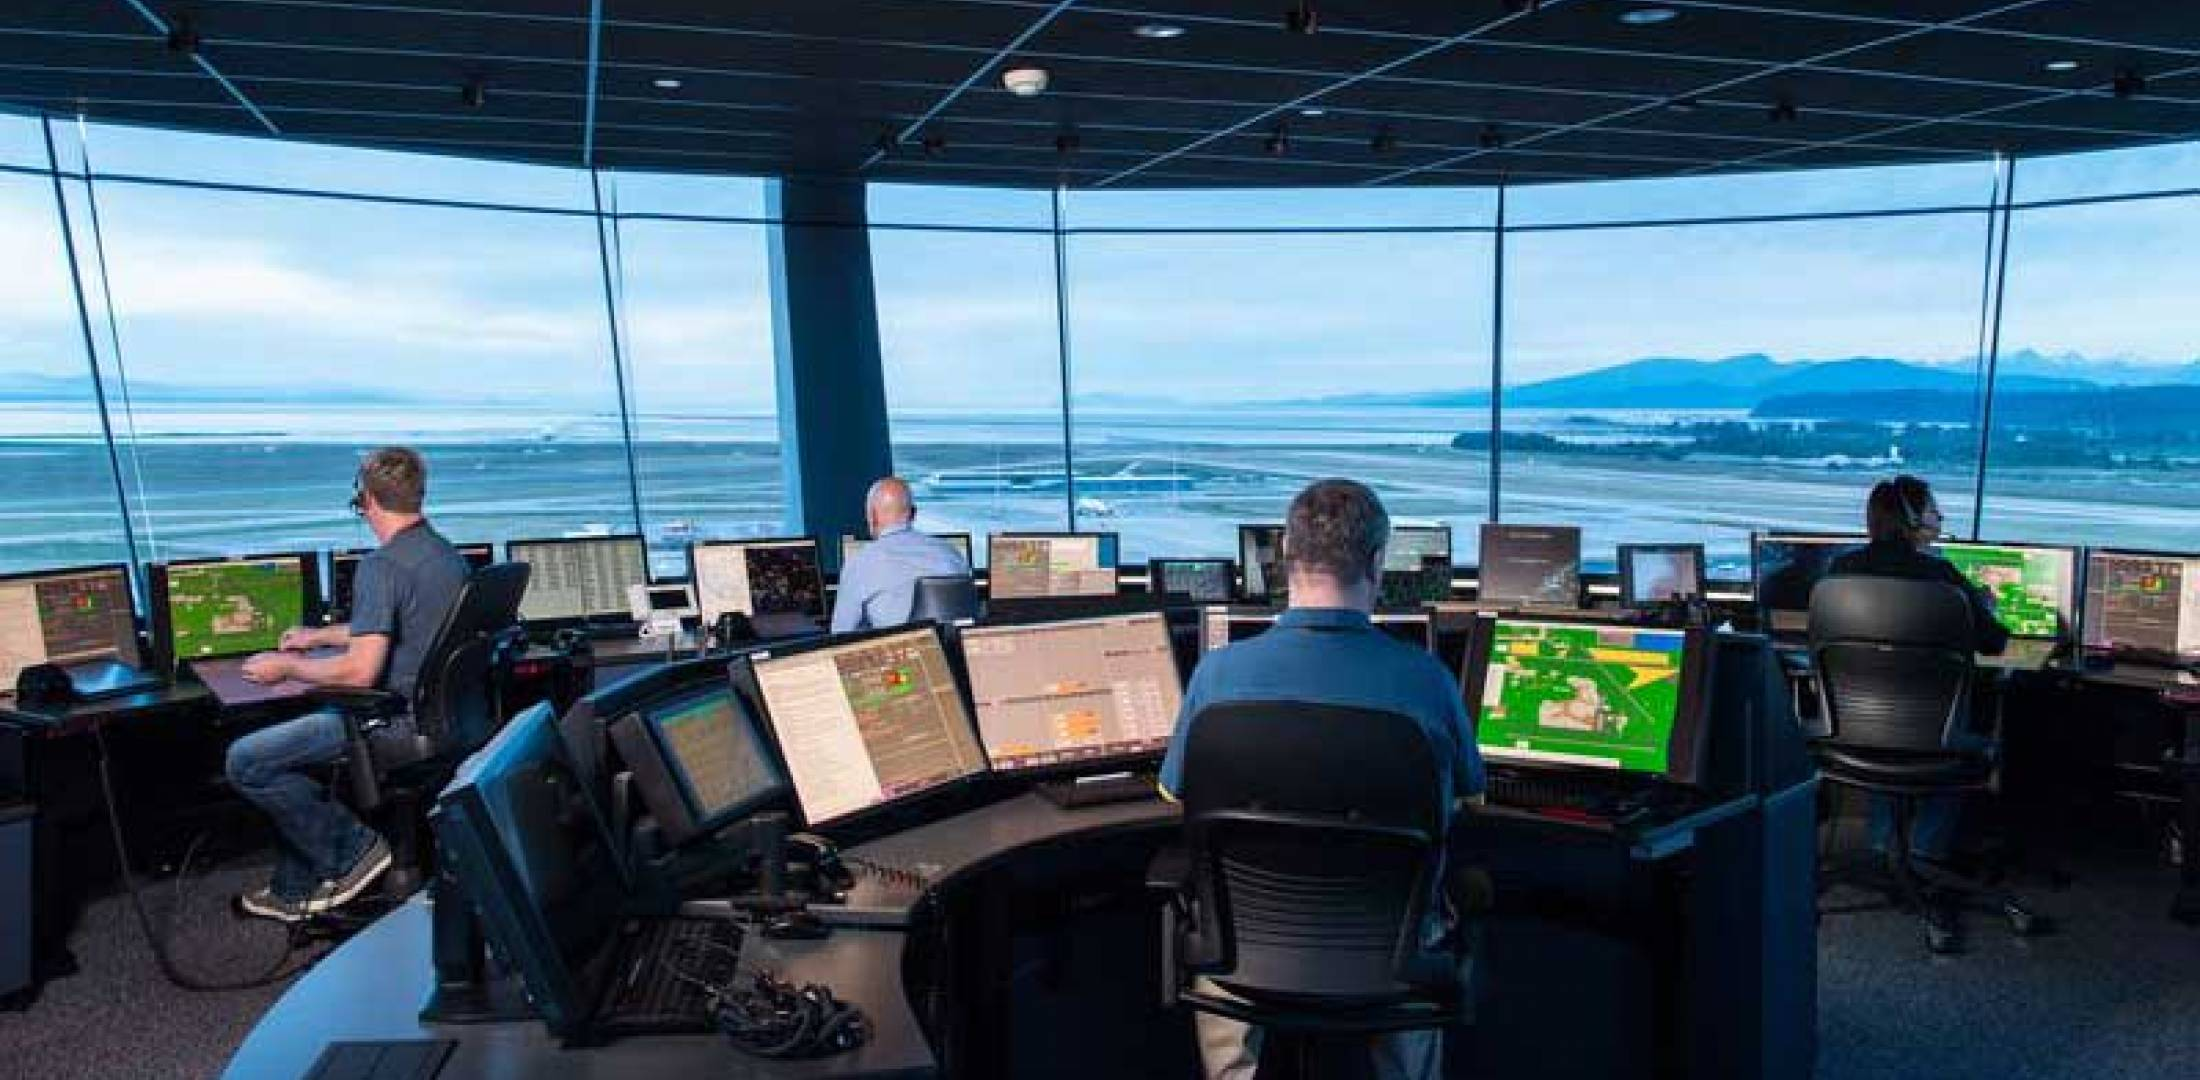 Vancouver Airport control tower